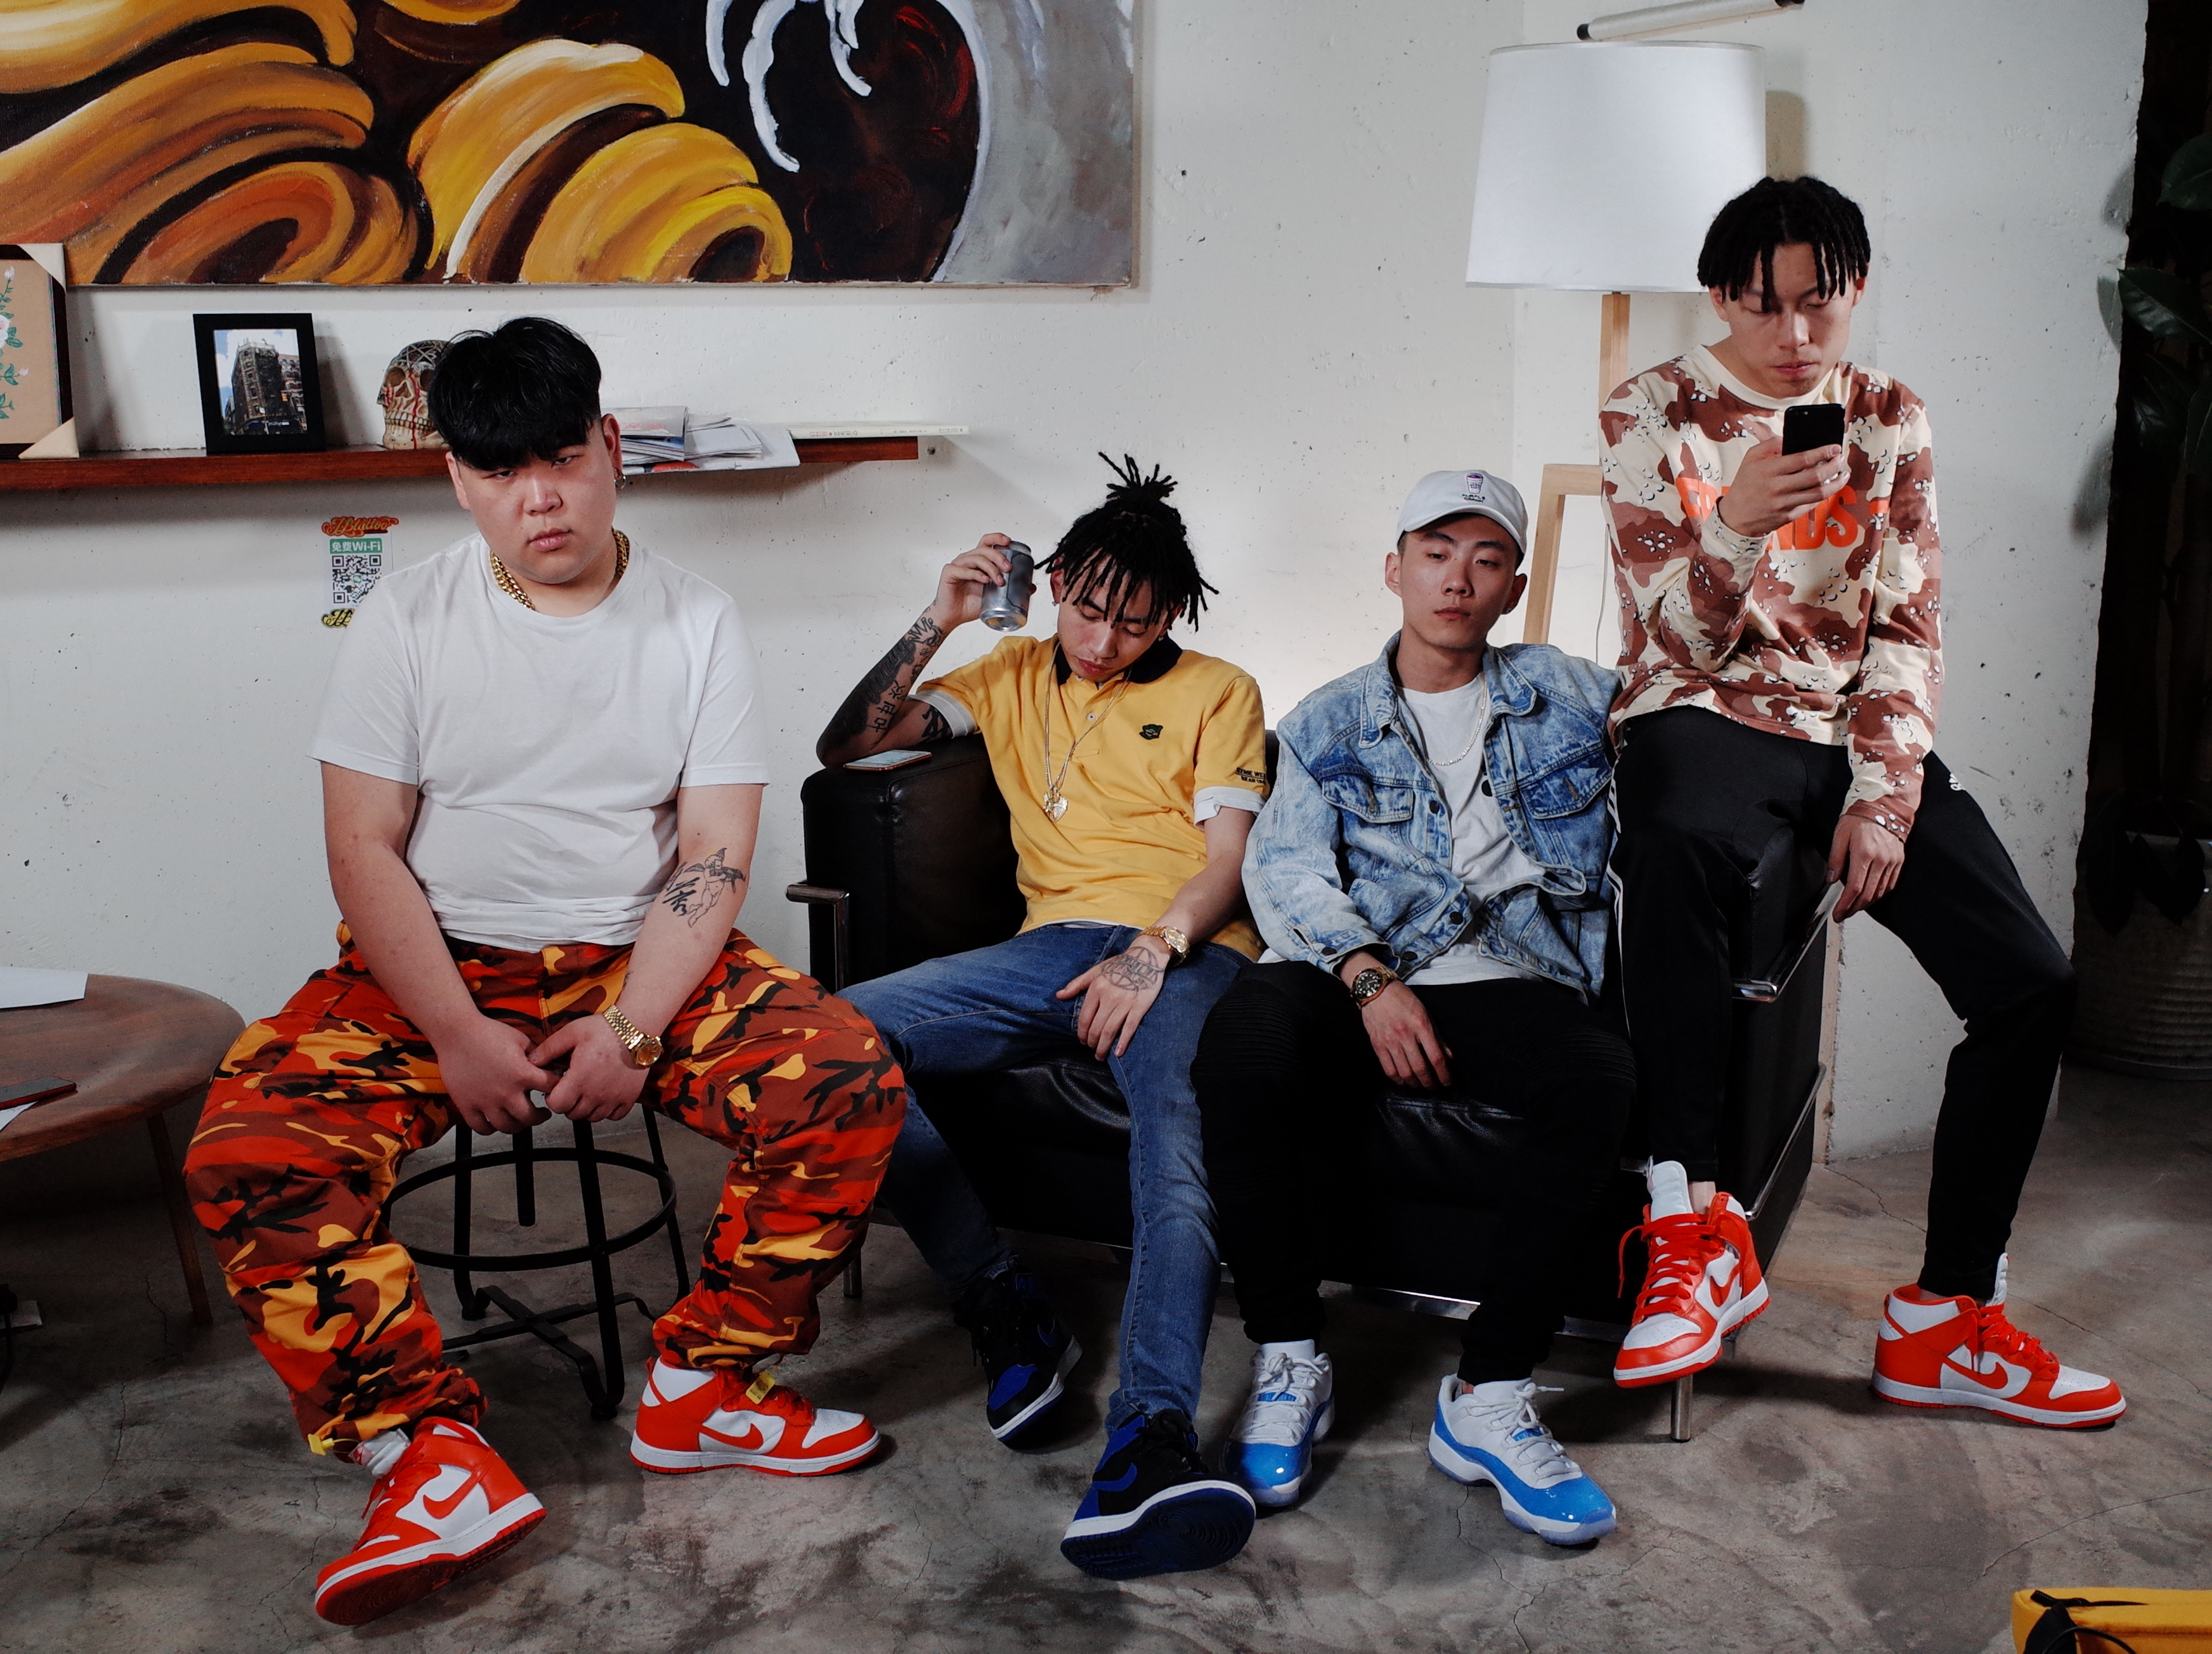 Chengdu based Higher Brothers in Kuala Lumpur 9 December 2017